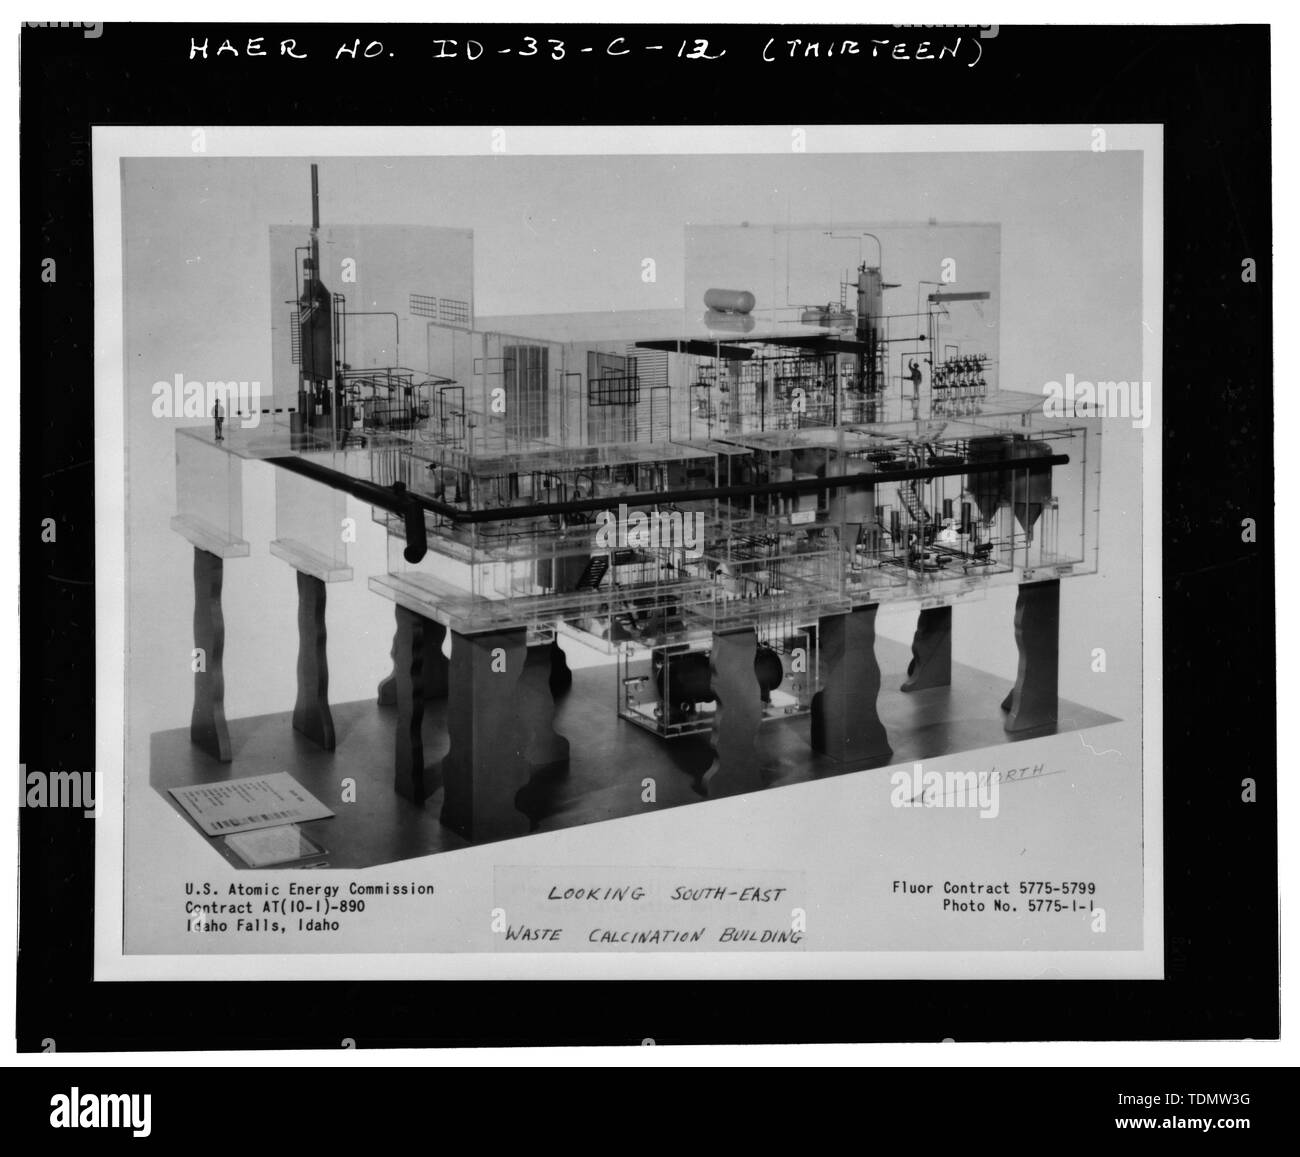 PHOTOGRAPH OF A PHOTOGRAPH OF A SCALE MODEL OF THE WASTE CALCINER FACILITY, SHOWING VIEW FACING THE SOUTHEAST. INEEL PHOTO NUMBER 95-903-1-1. - Idaho National Engineering Laboratory, Old Waste Calcining Facility, Scoville, Butte County, ID - Stock Image